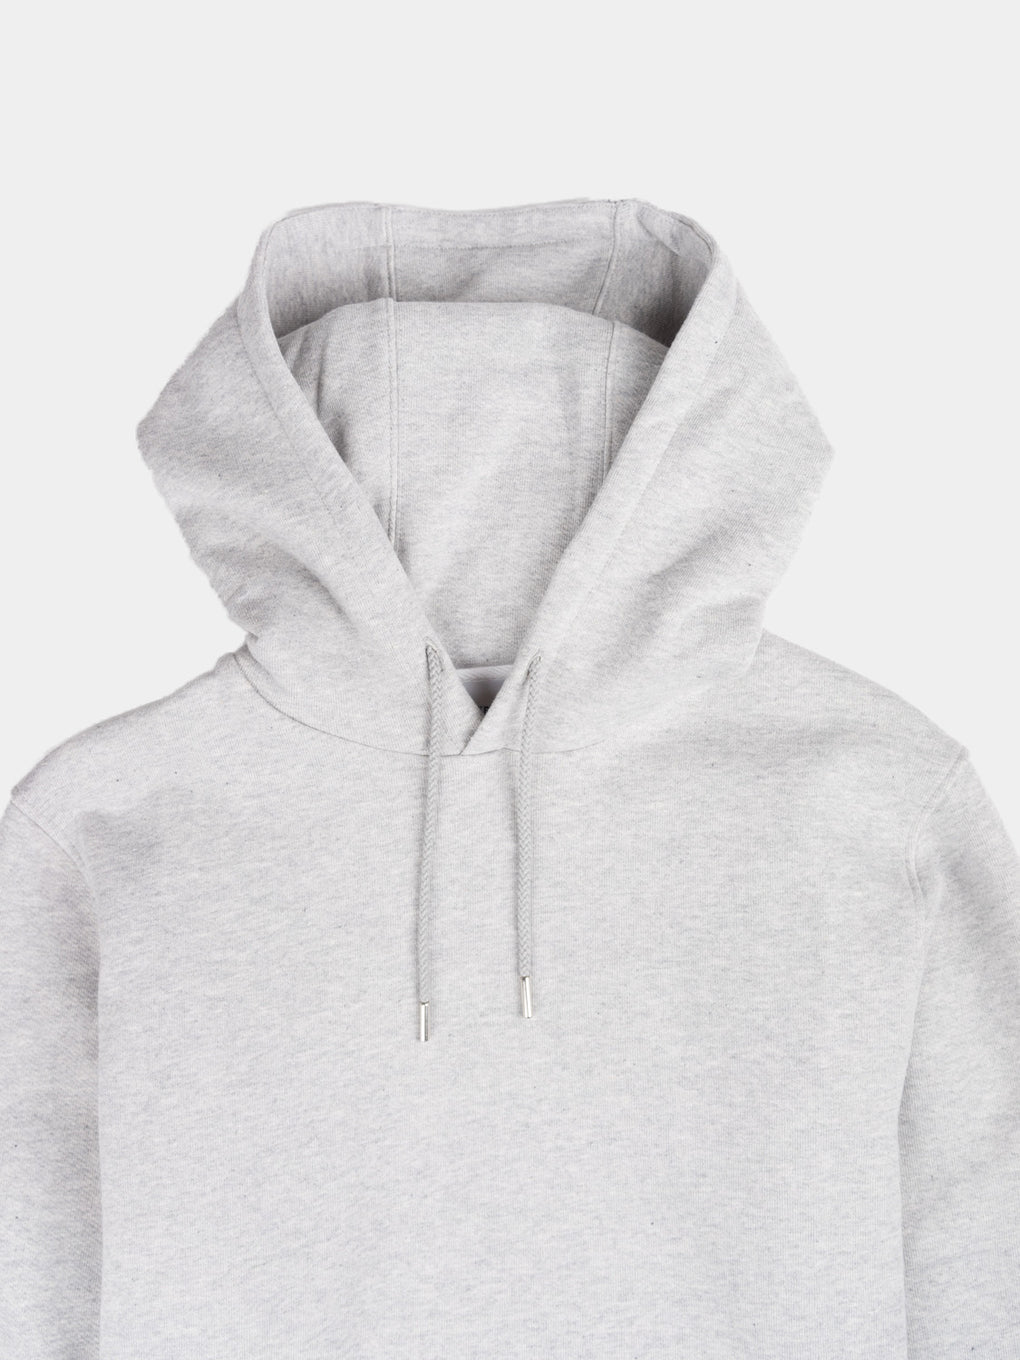 vagn classic hoodie, light grey melange, norse projects, hood detail shot